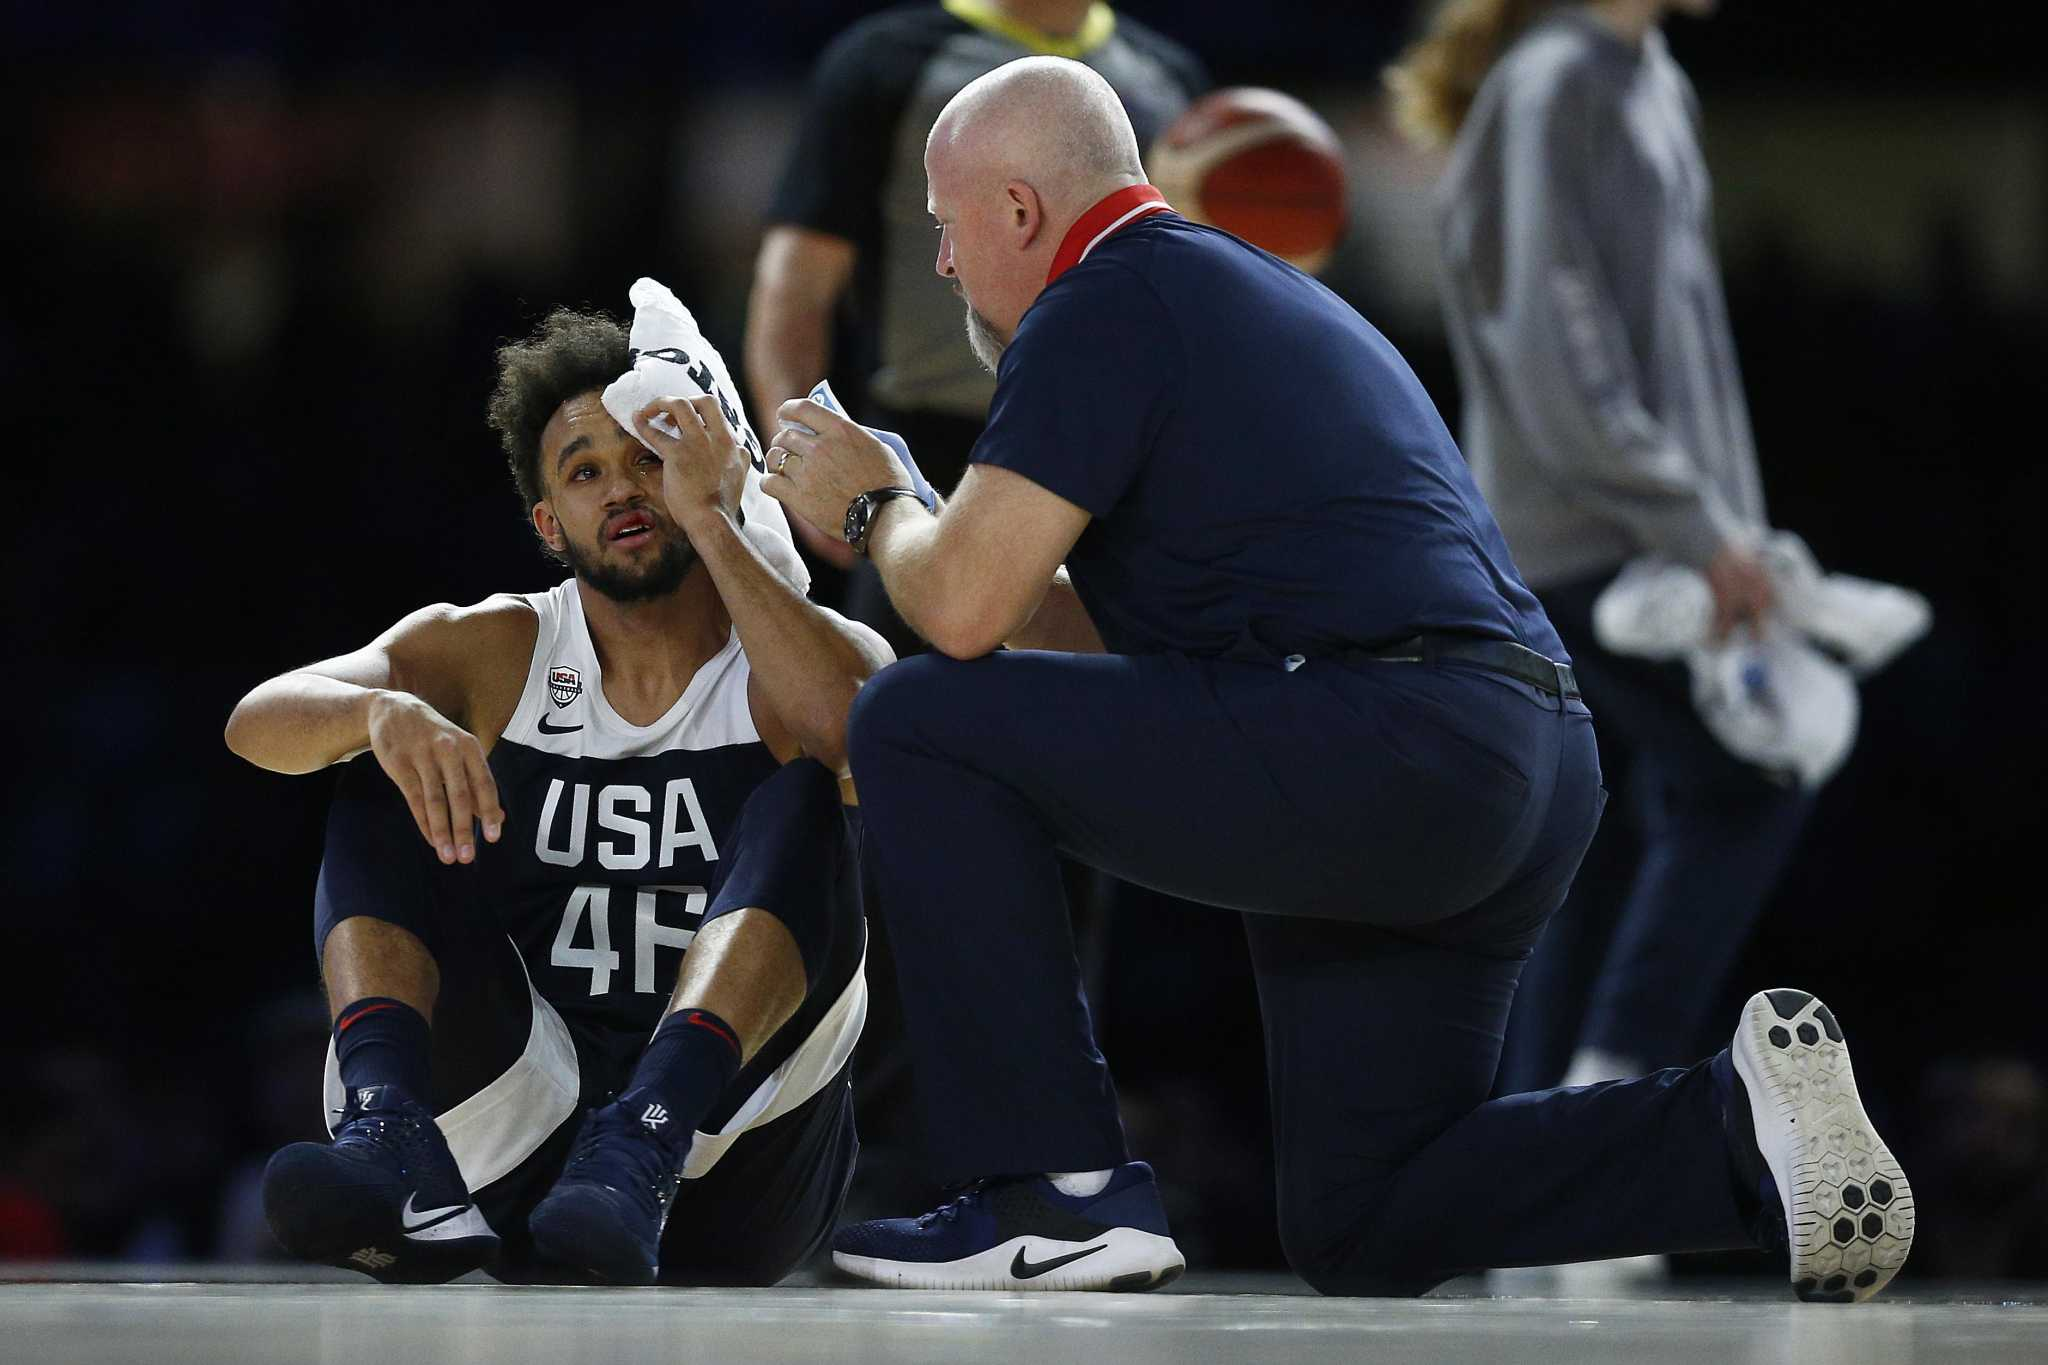 Derrick White makes Team USA, but injury puts status in doubt